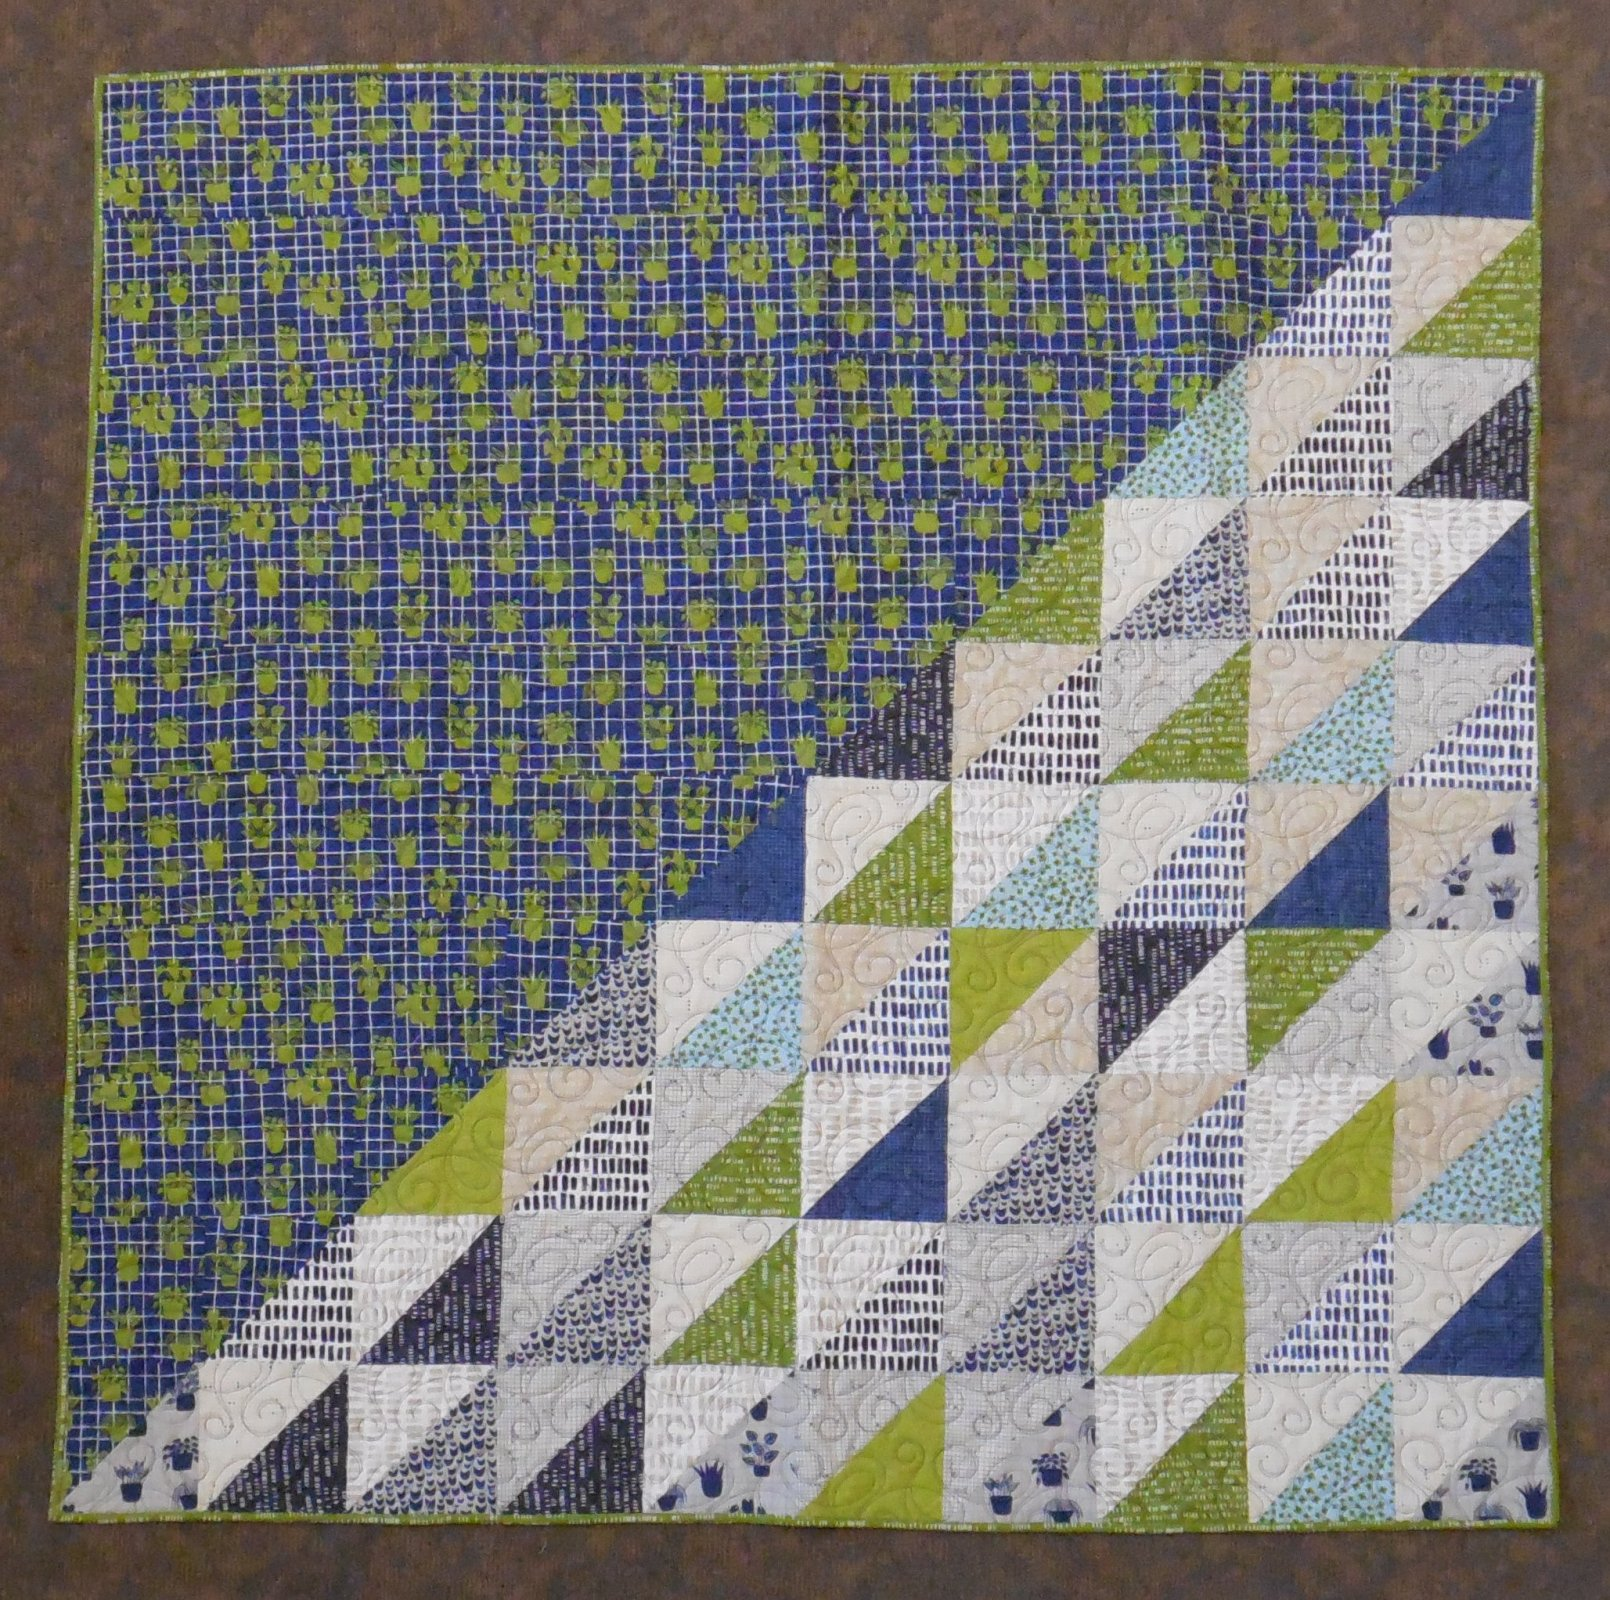 Living Room Quilt Kit 60 x 60